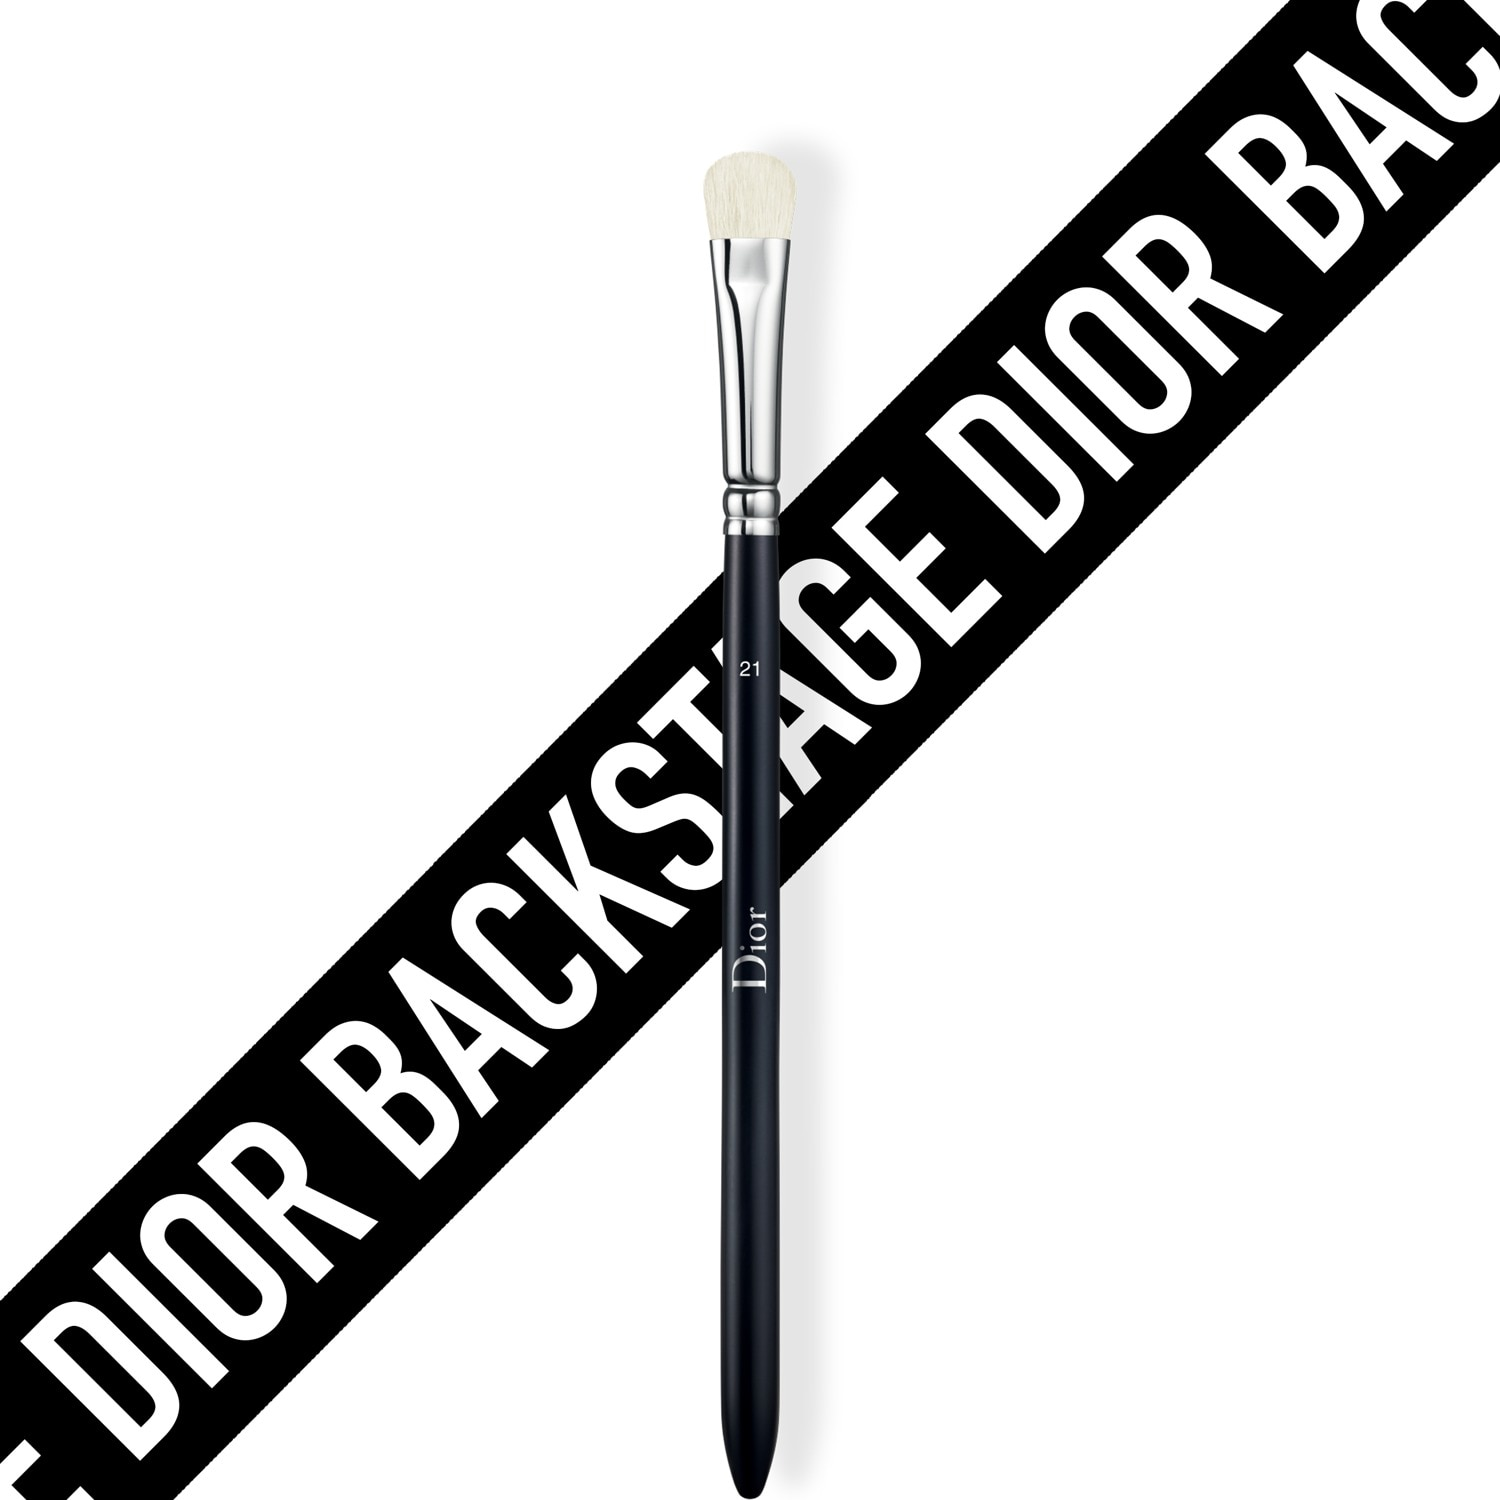 DIOR BACKSTAGE EYES SHADOW FLAT BRUSH NO. 21